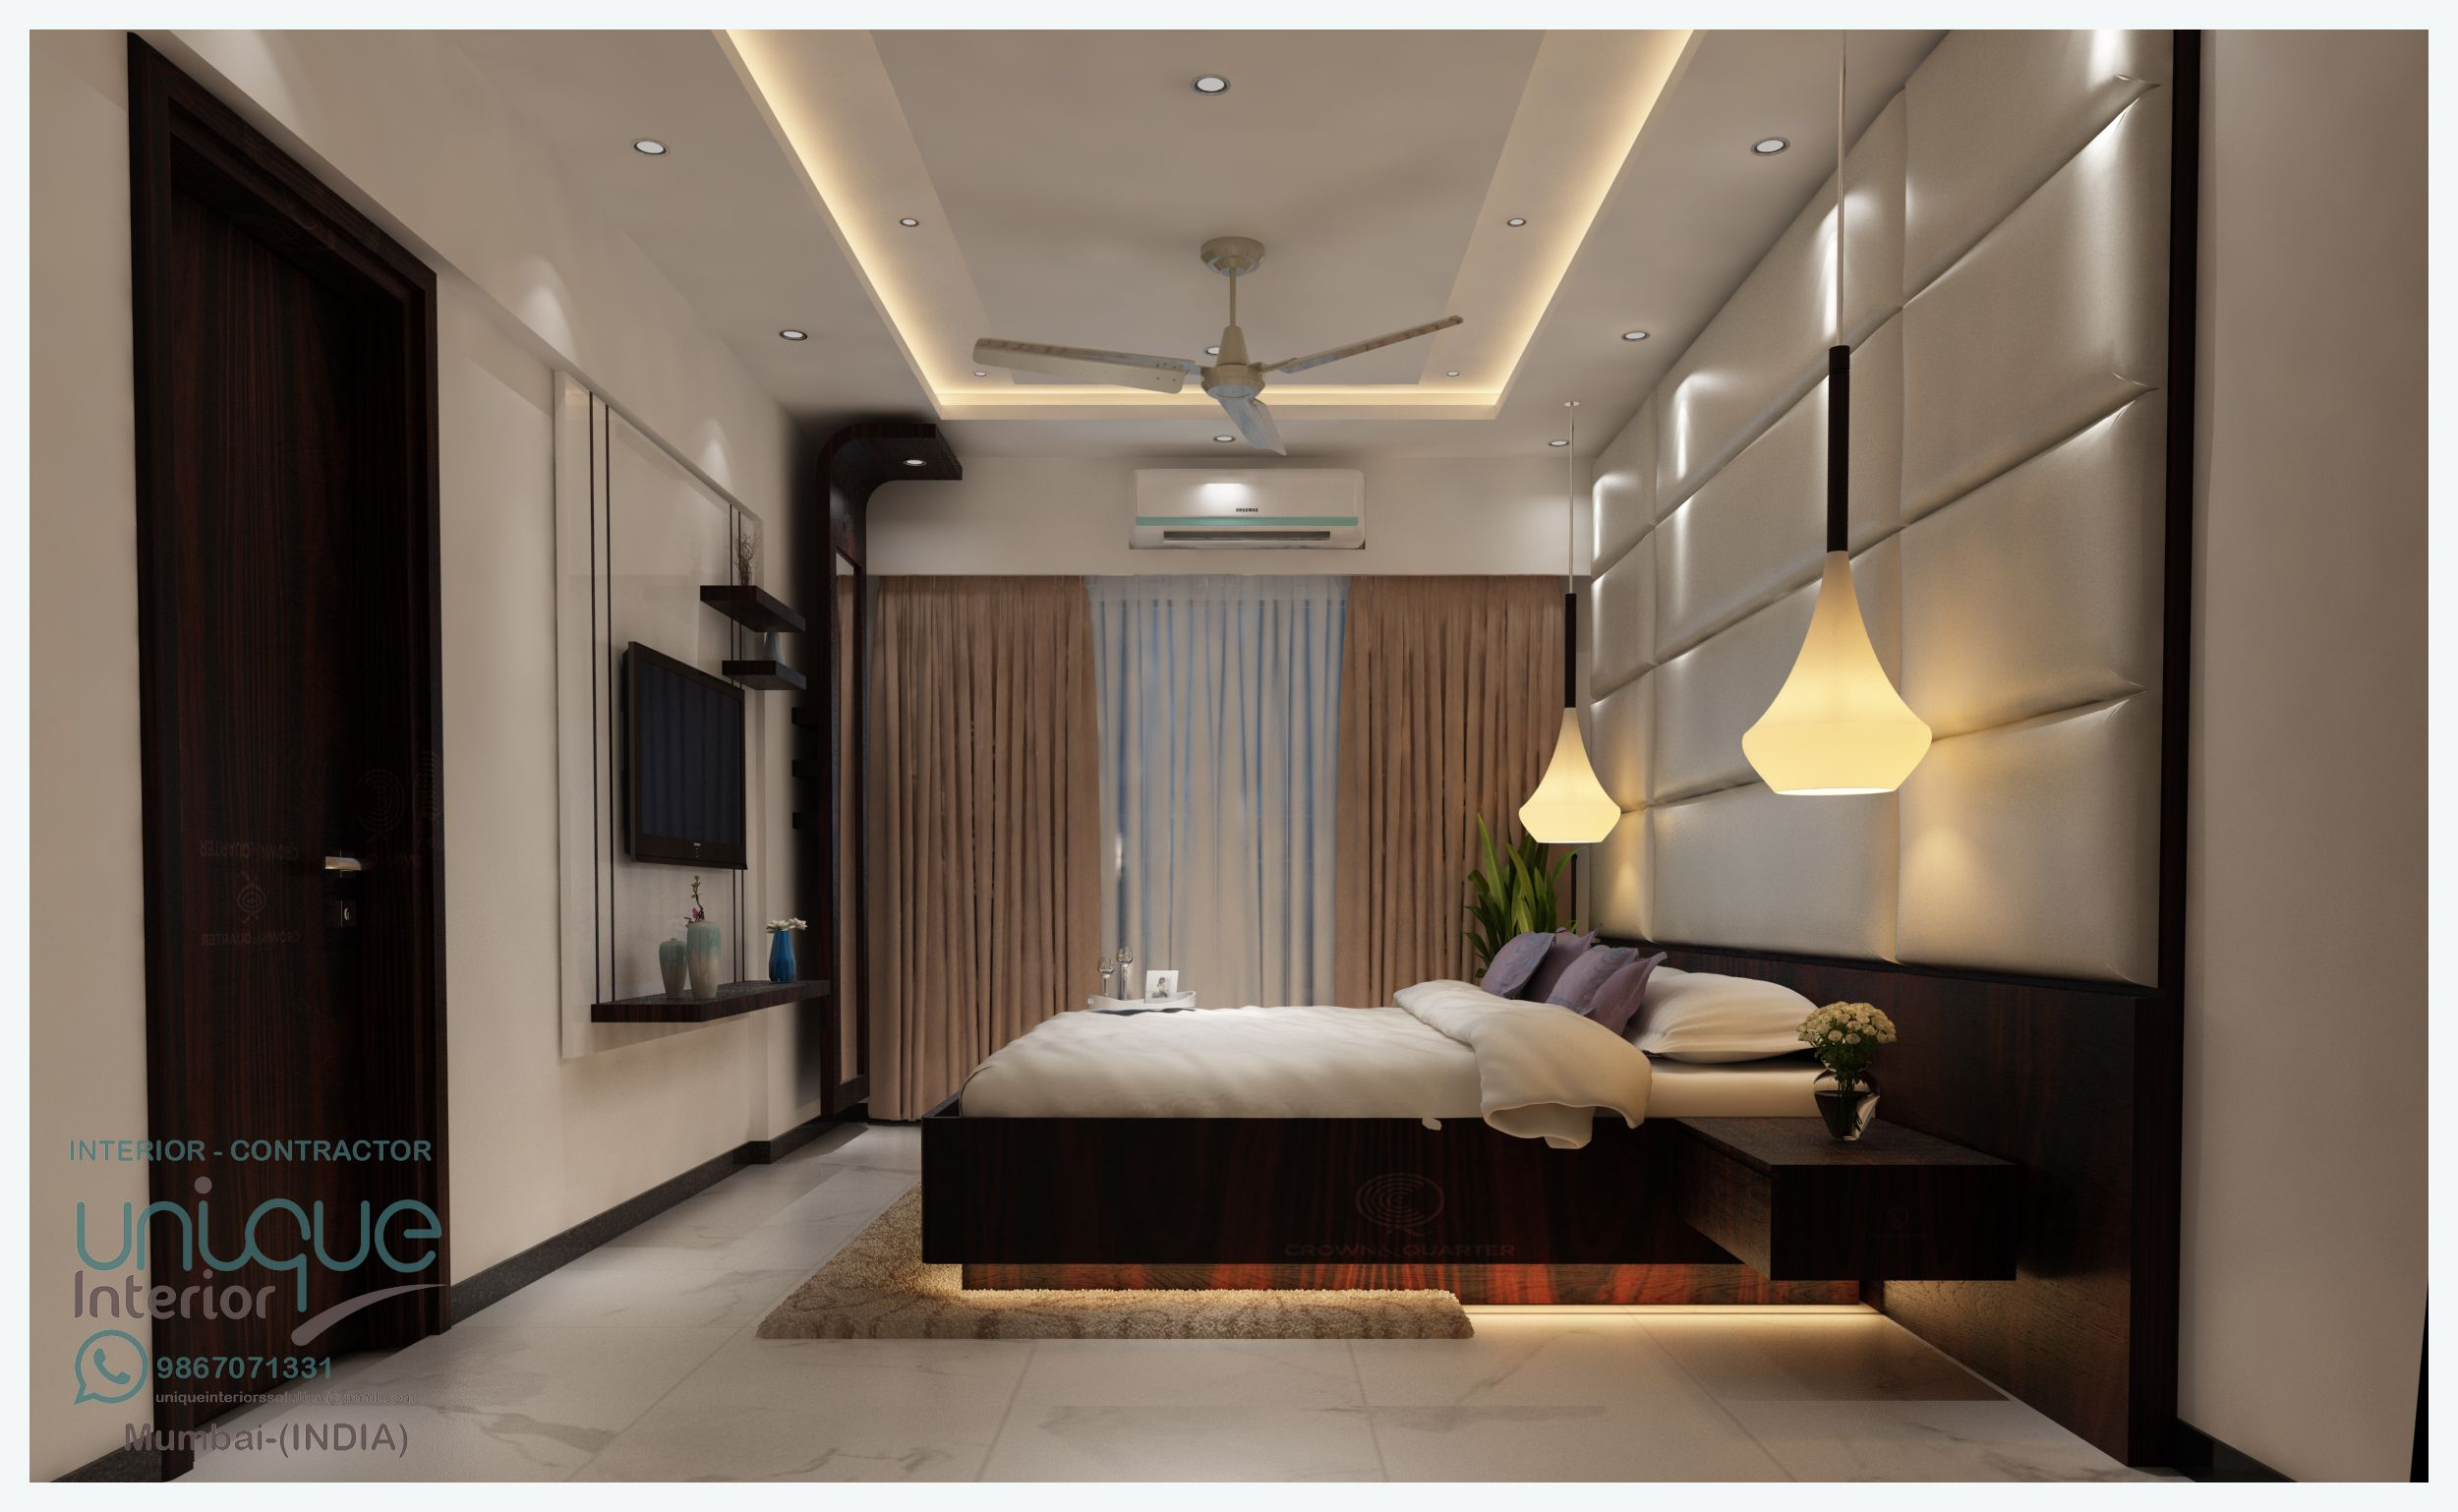 Pin By Unique Interior On Bed Office Interior Design